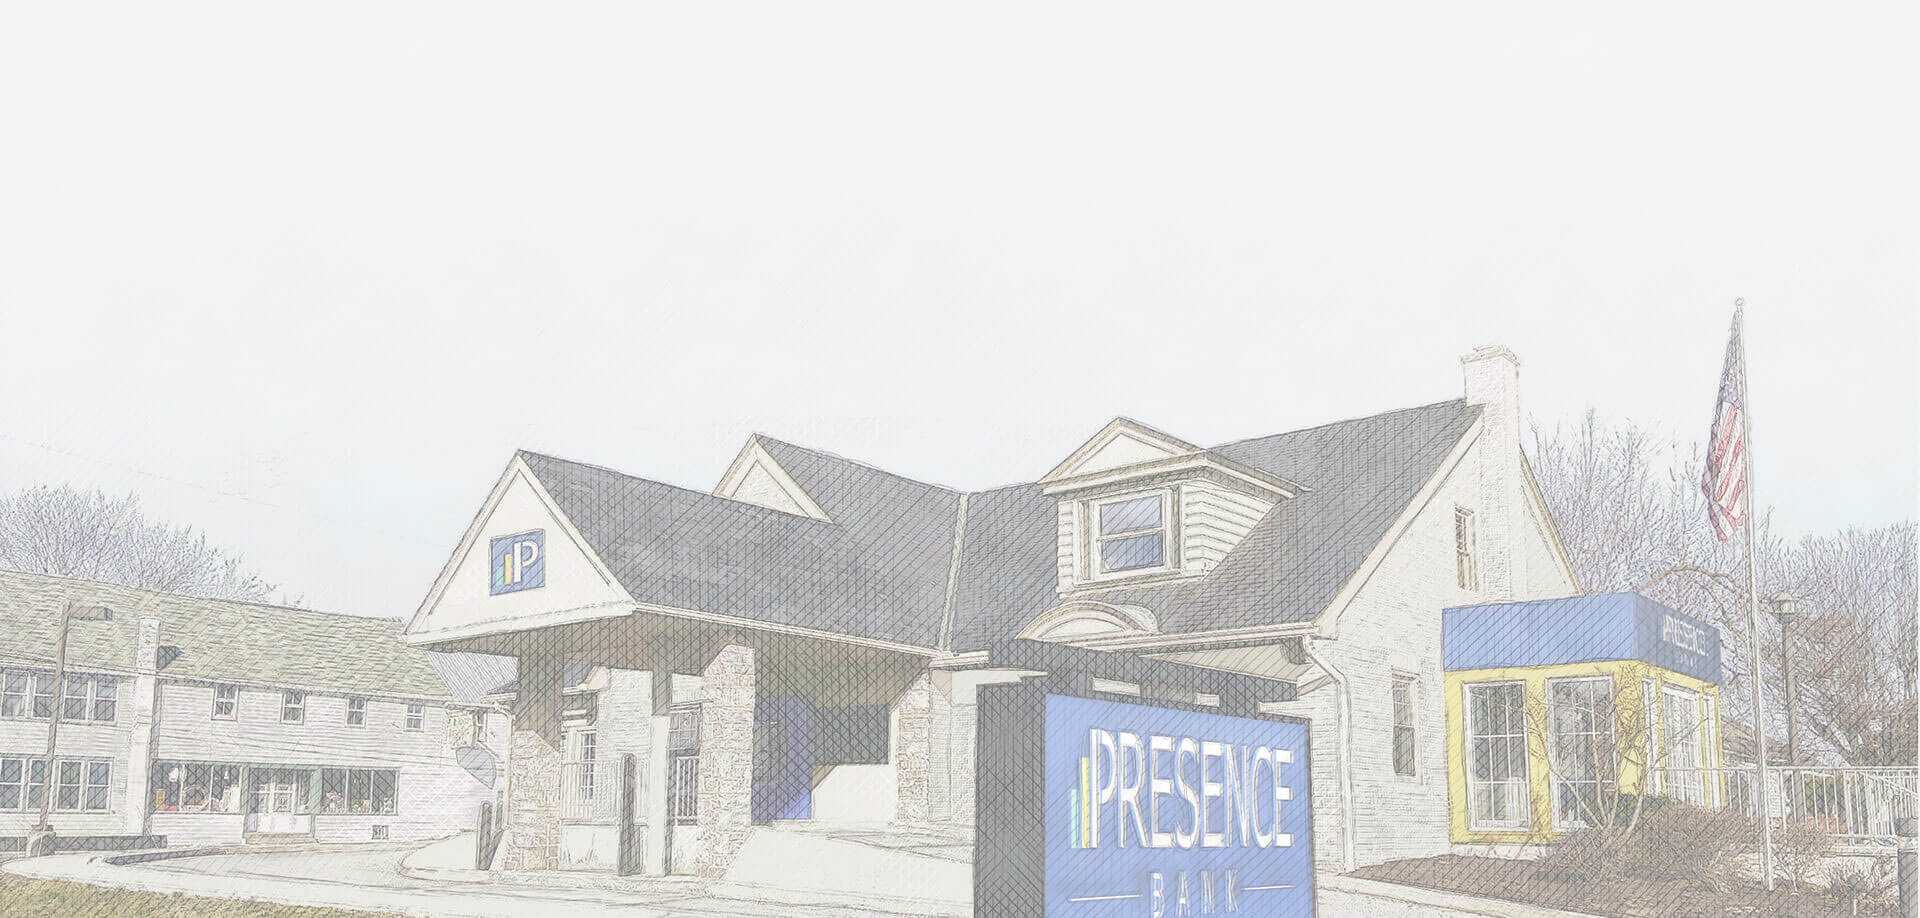 Rendering of Prosper Bank Location with Signage